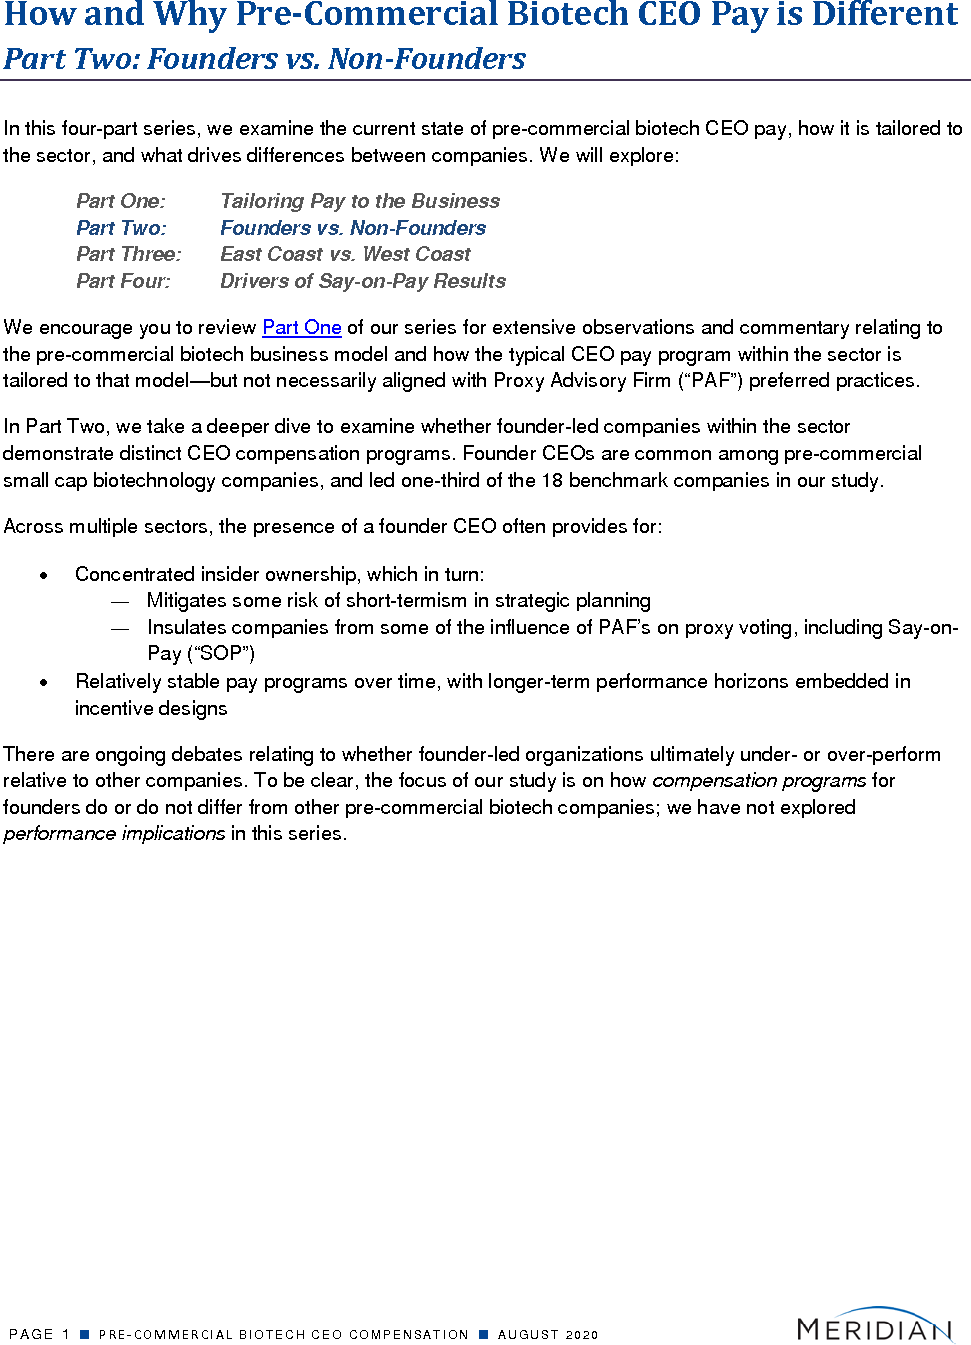 How and Why Pre-Commercial Biotech CEO Pay is Different (PDF)